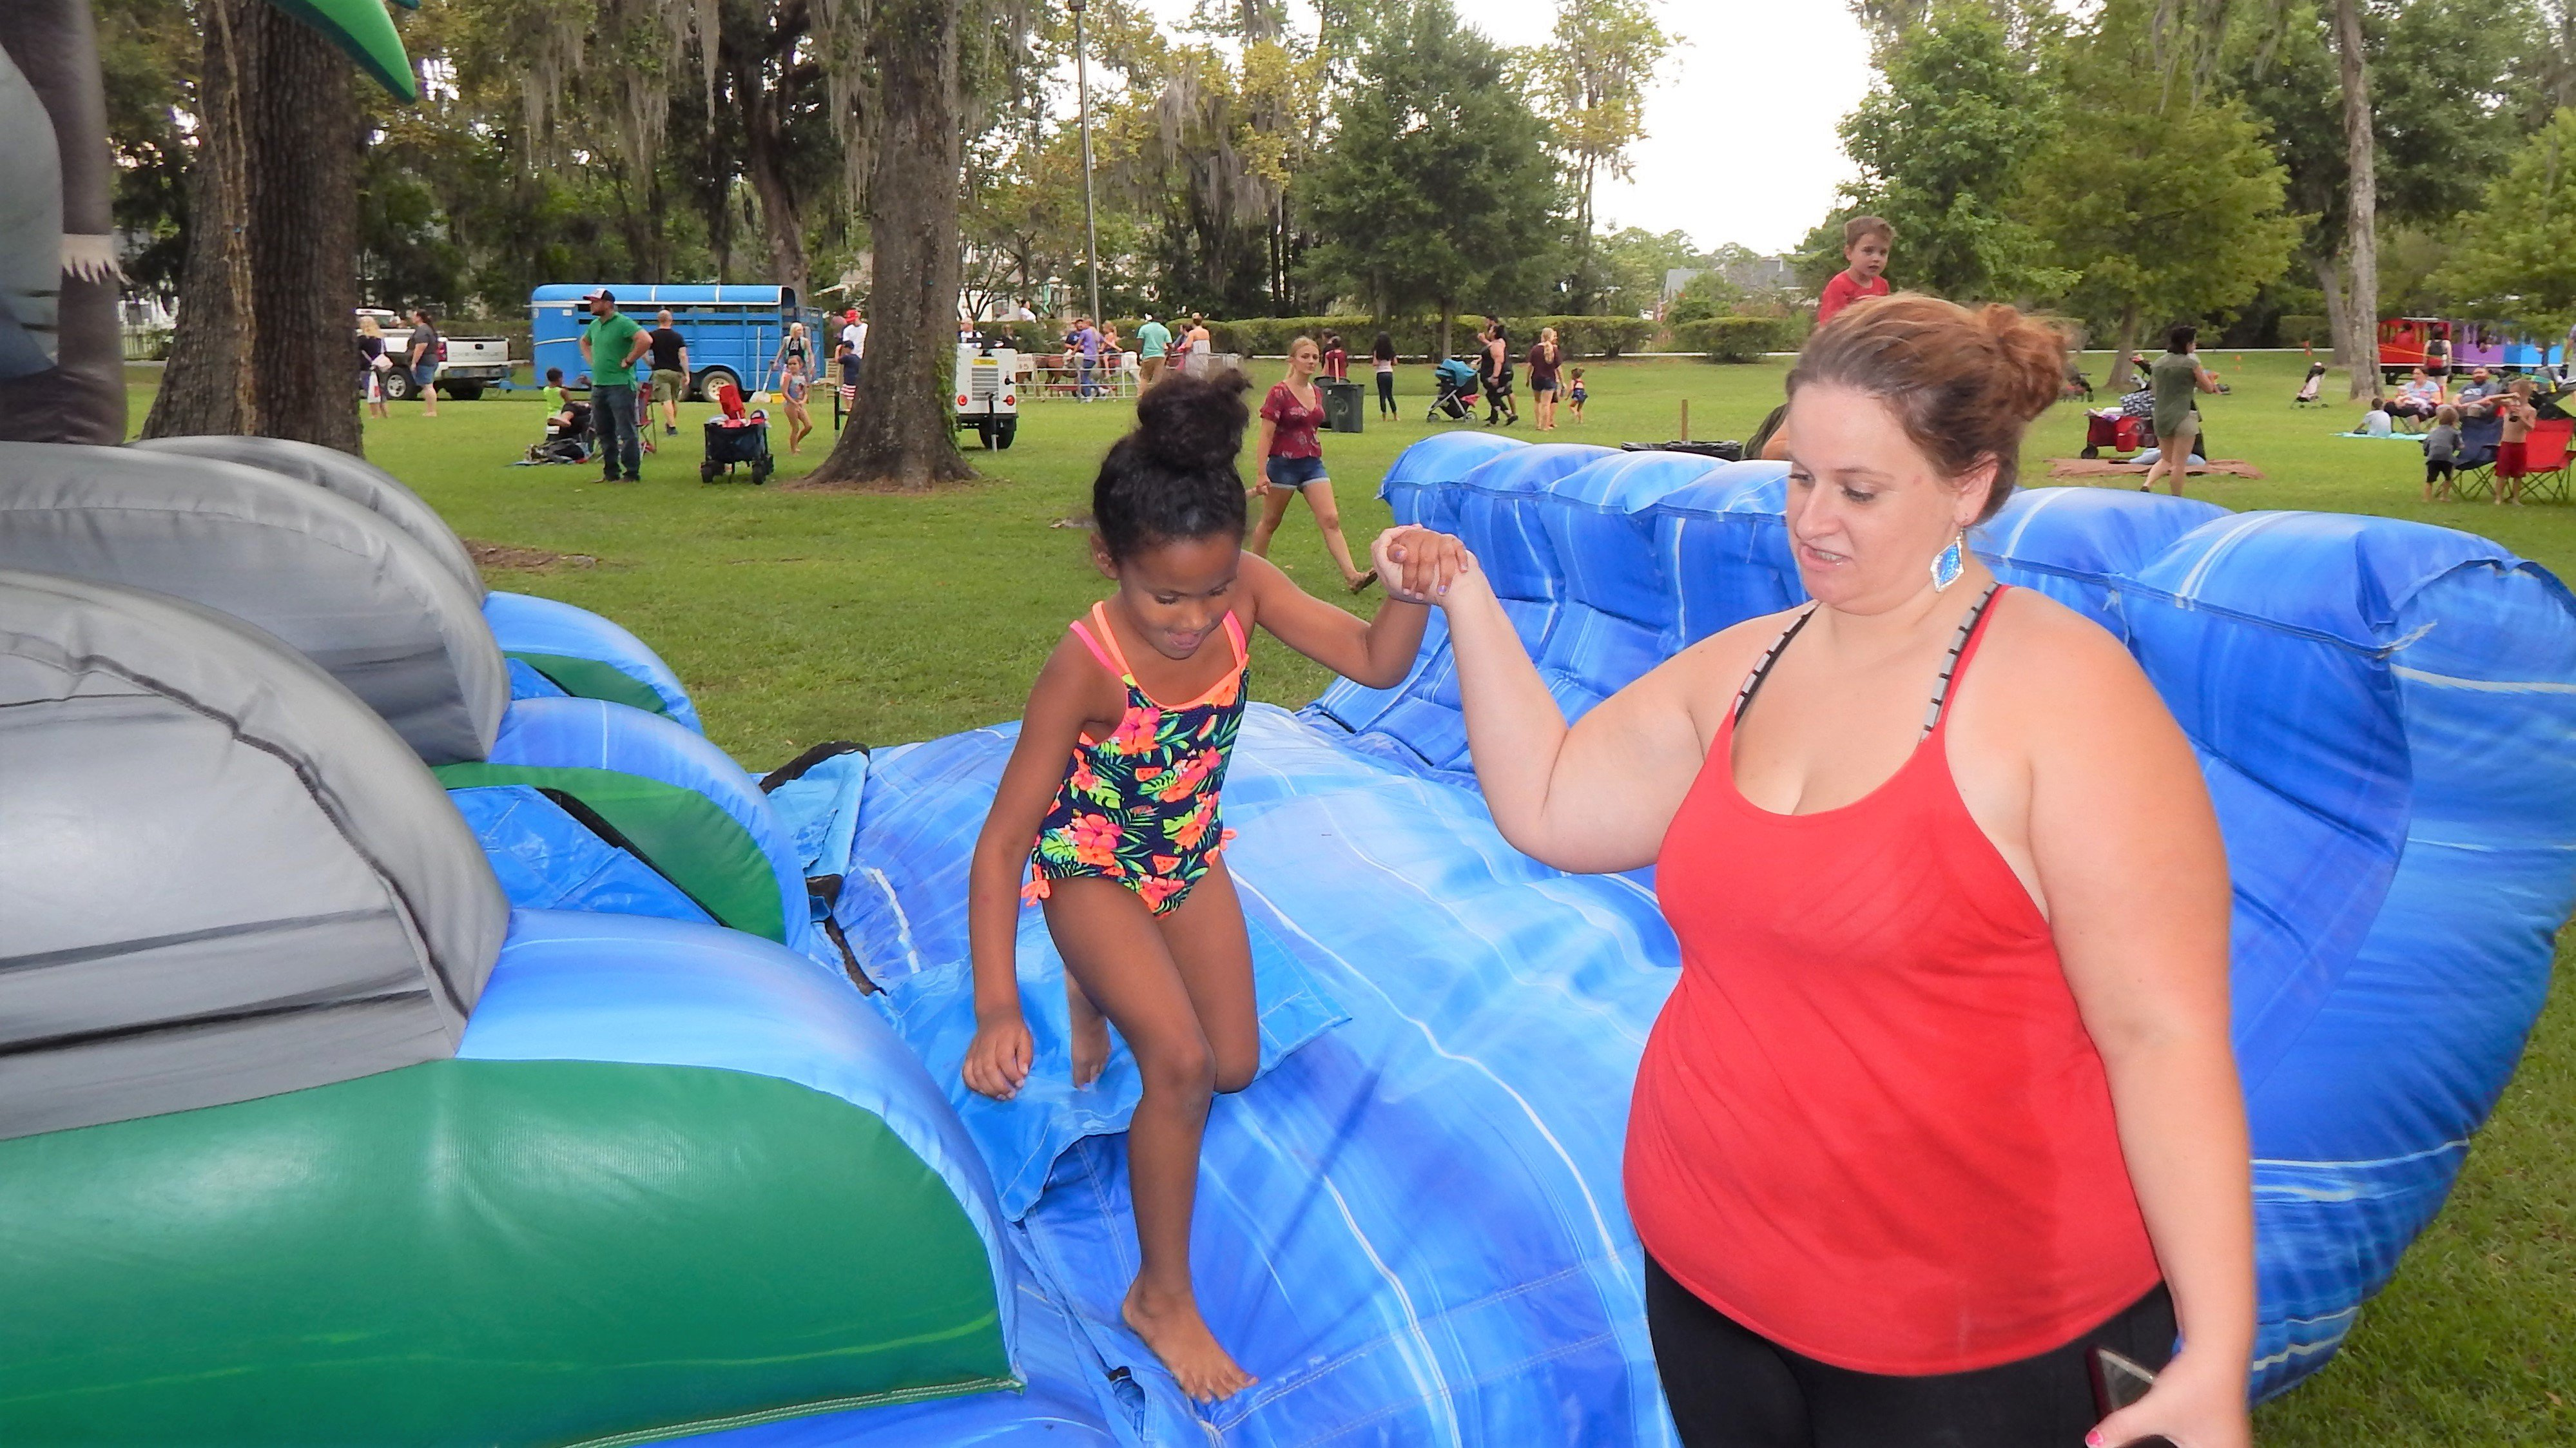 A young girl gets assistance out of the water slide. Photo by Mark Swendra